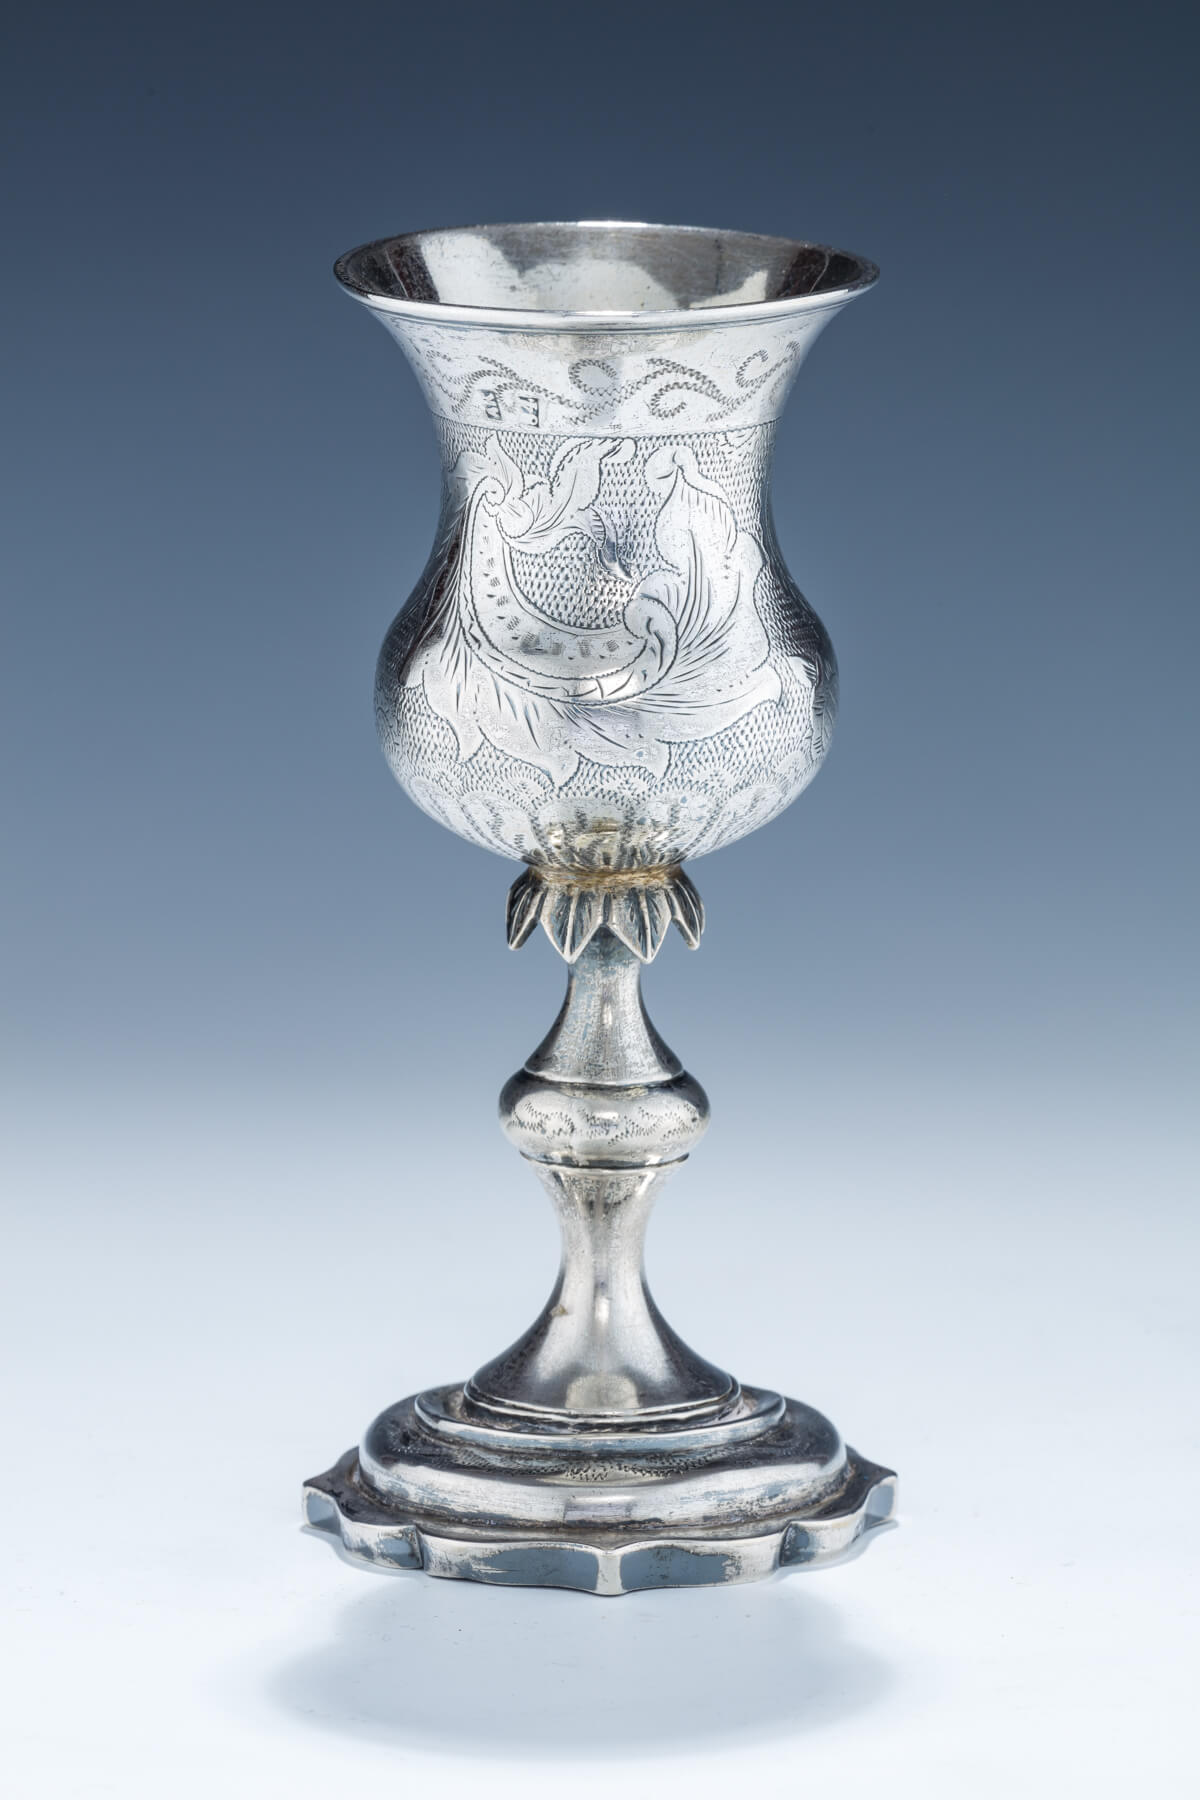 52. A Large Silver Kiddush Goblet